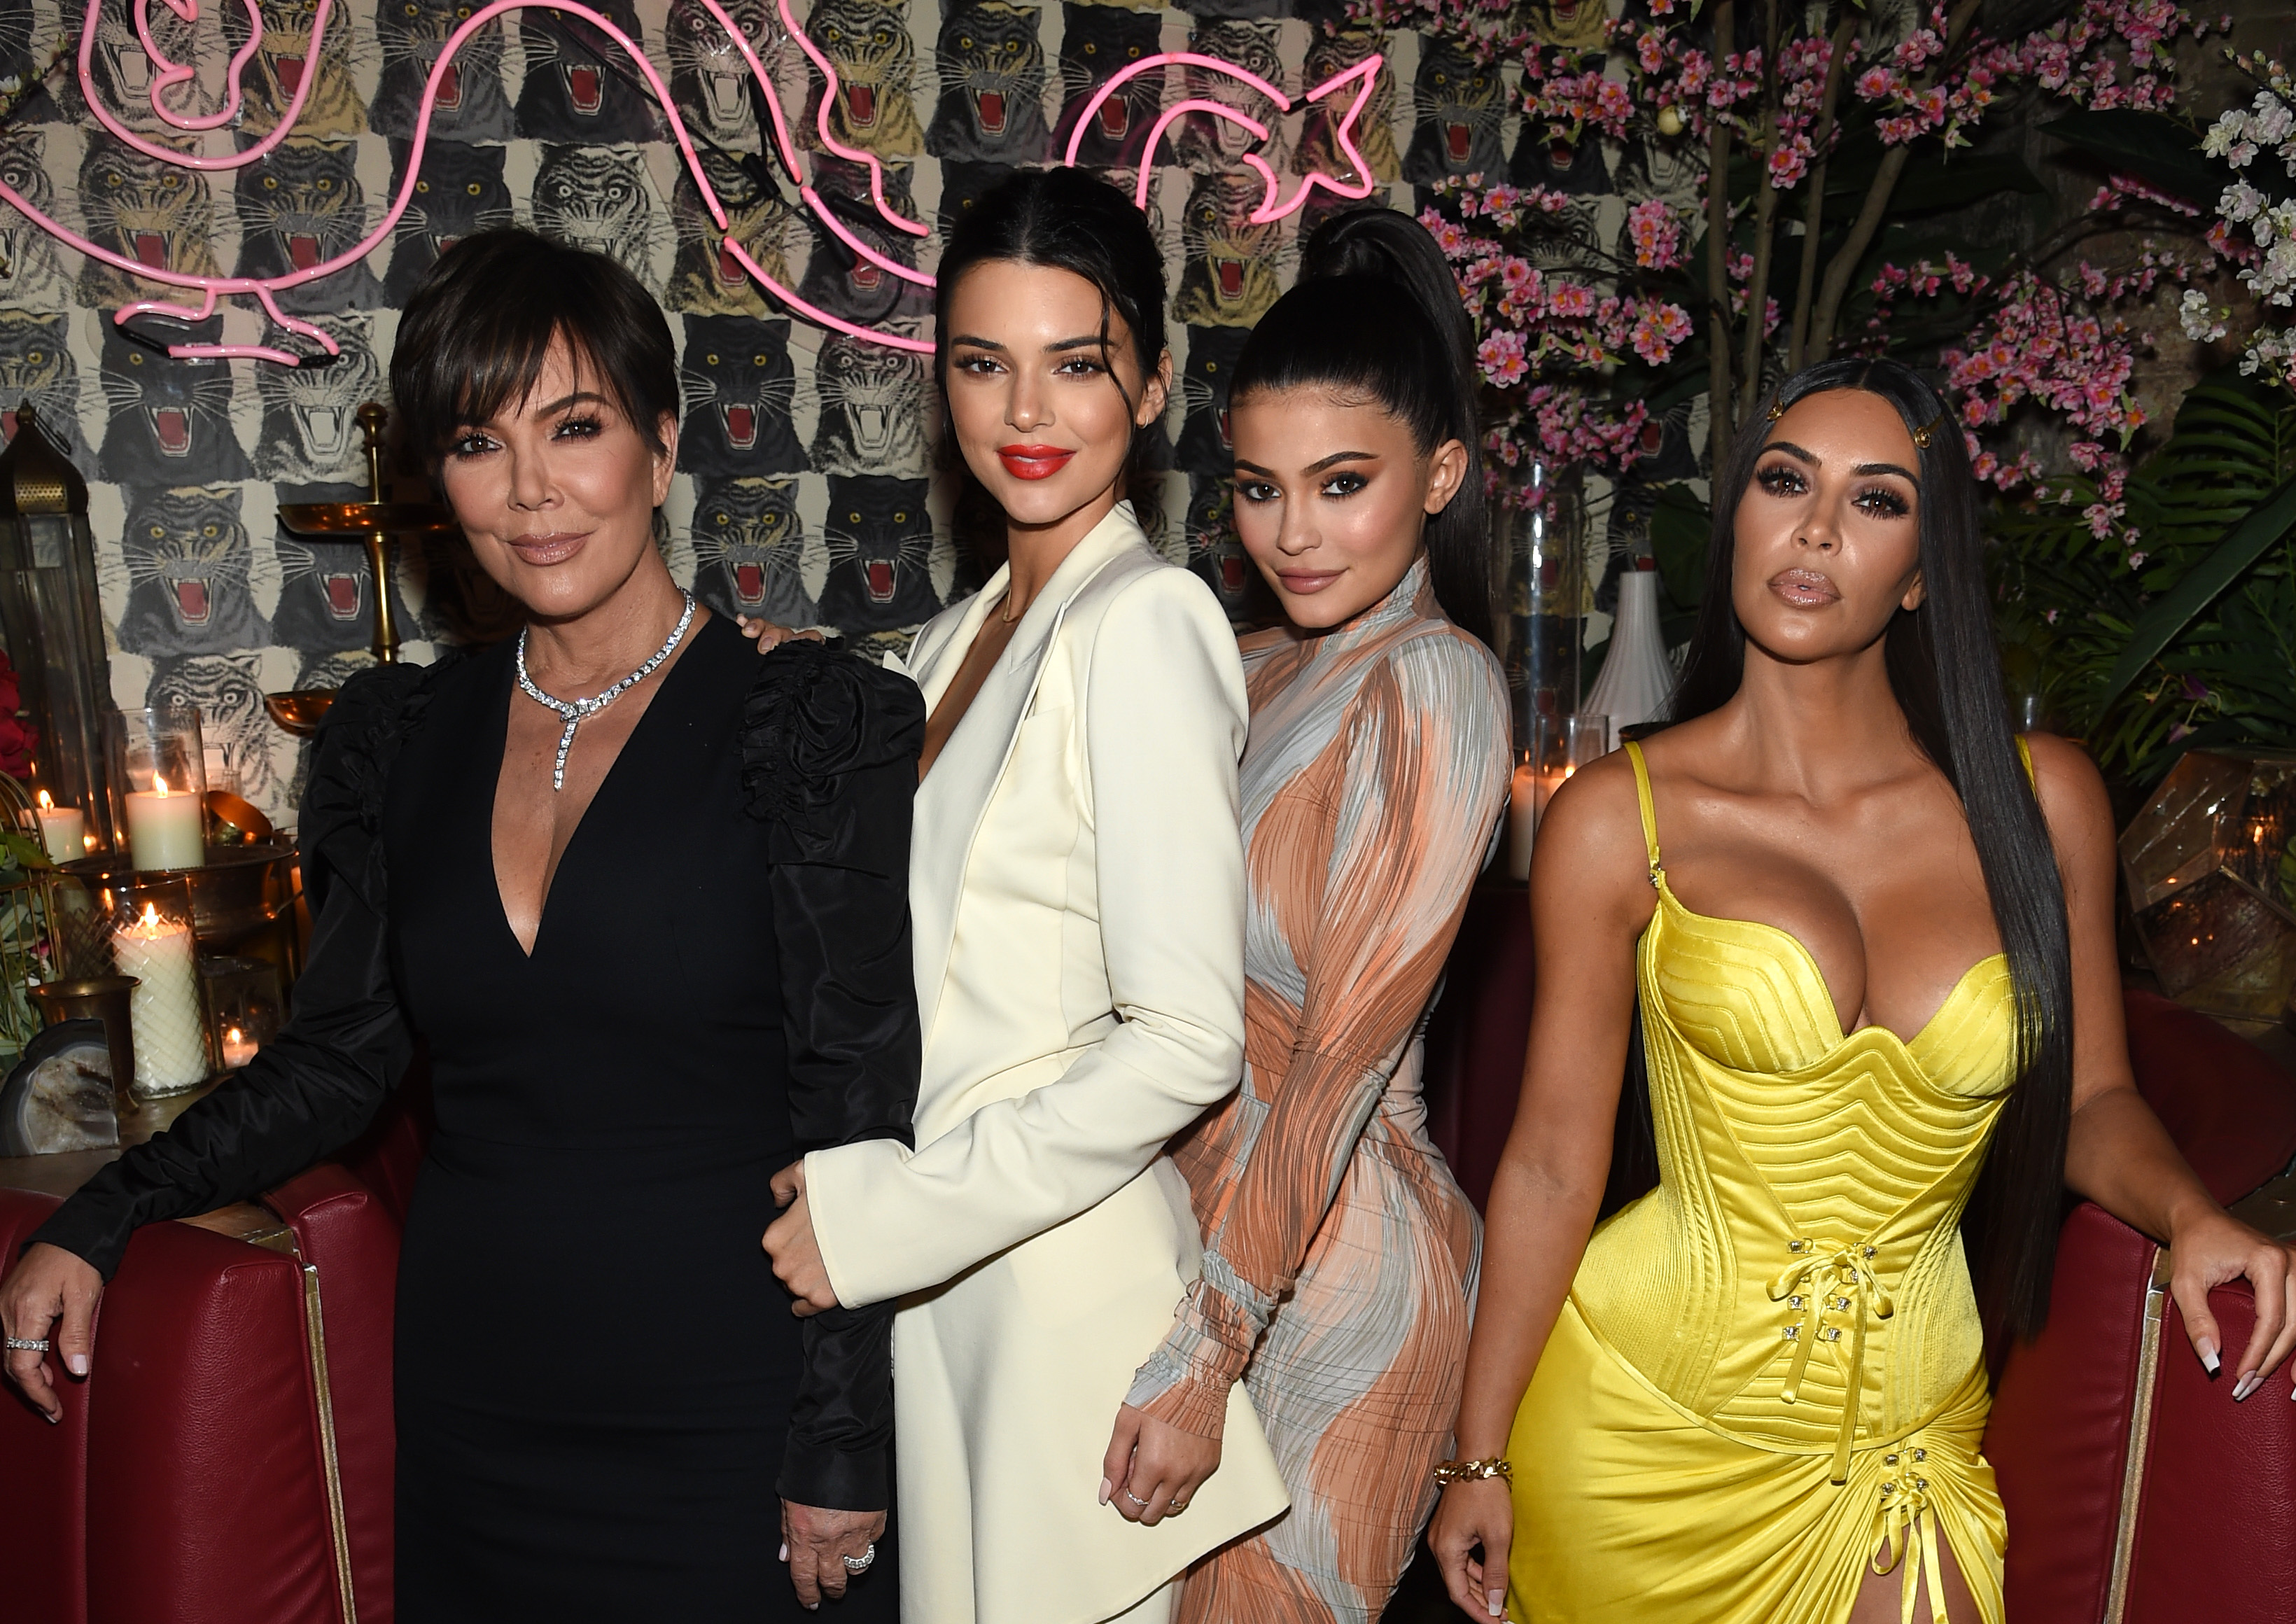 (L-R) Talent Manager, Jenner Communications, Kris Jenner, Model Kendall Jenner, Founder, Kylie Cosmetics Kylie Jenner, Founder, The Business of Fashion Imran Amed and Founder and CEO, KKW Kim Kardashian attends an intimate dinner hosted by The Business of Fashion to celebrate its latest special print edition 'The Age of Influence' at Peachy's/Chinese Tuxedo on May 8, 2018 in New York City.